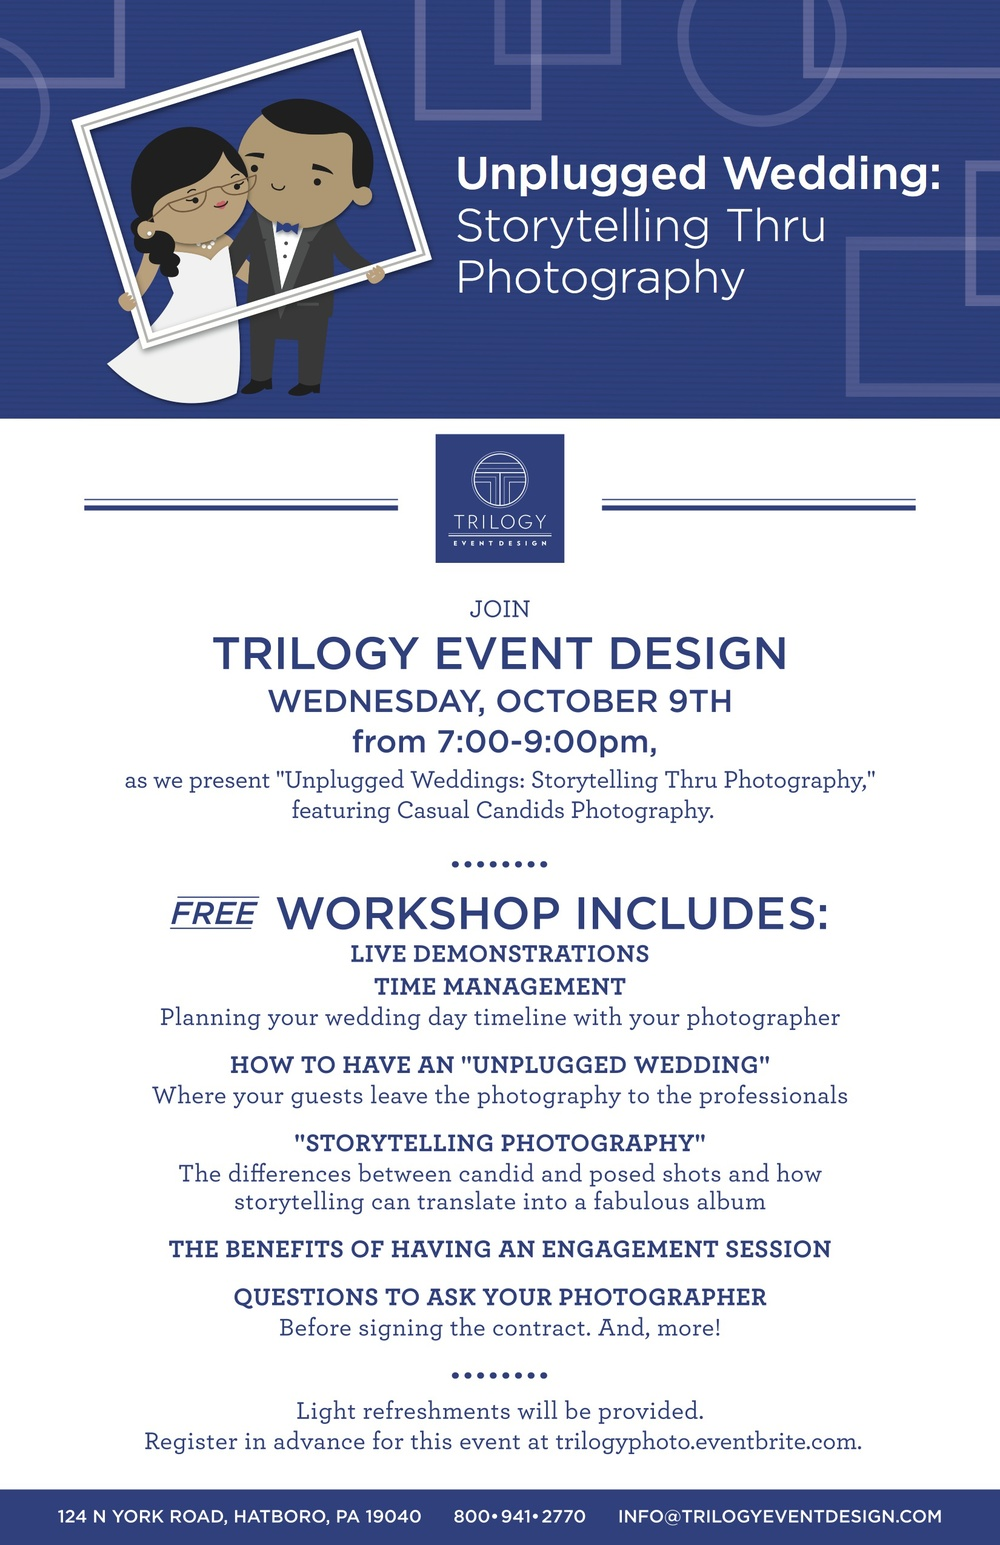 Trilogy_eventposter_photo.jpg